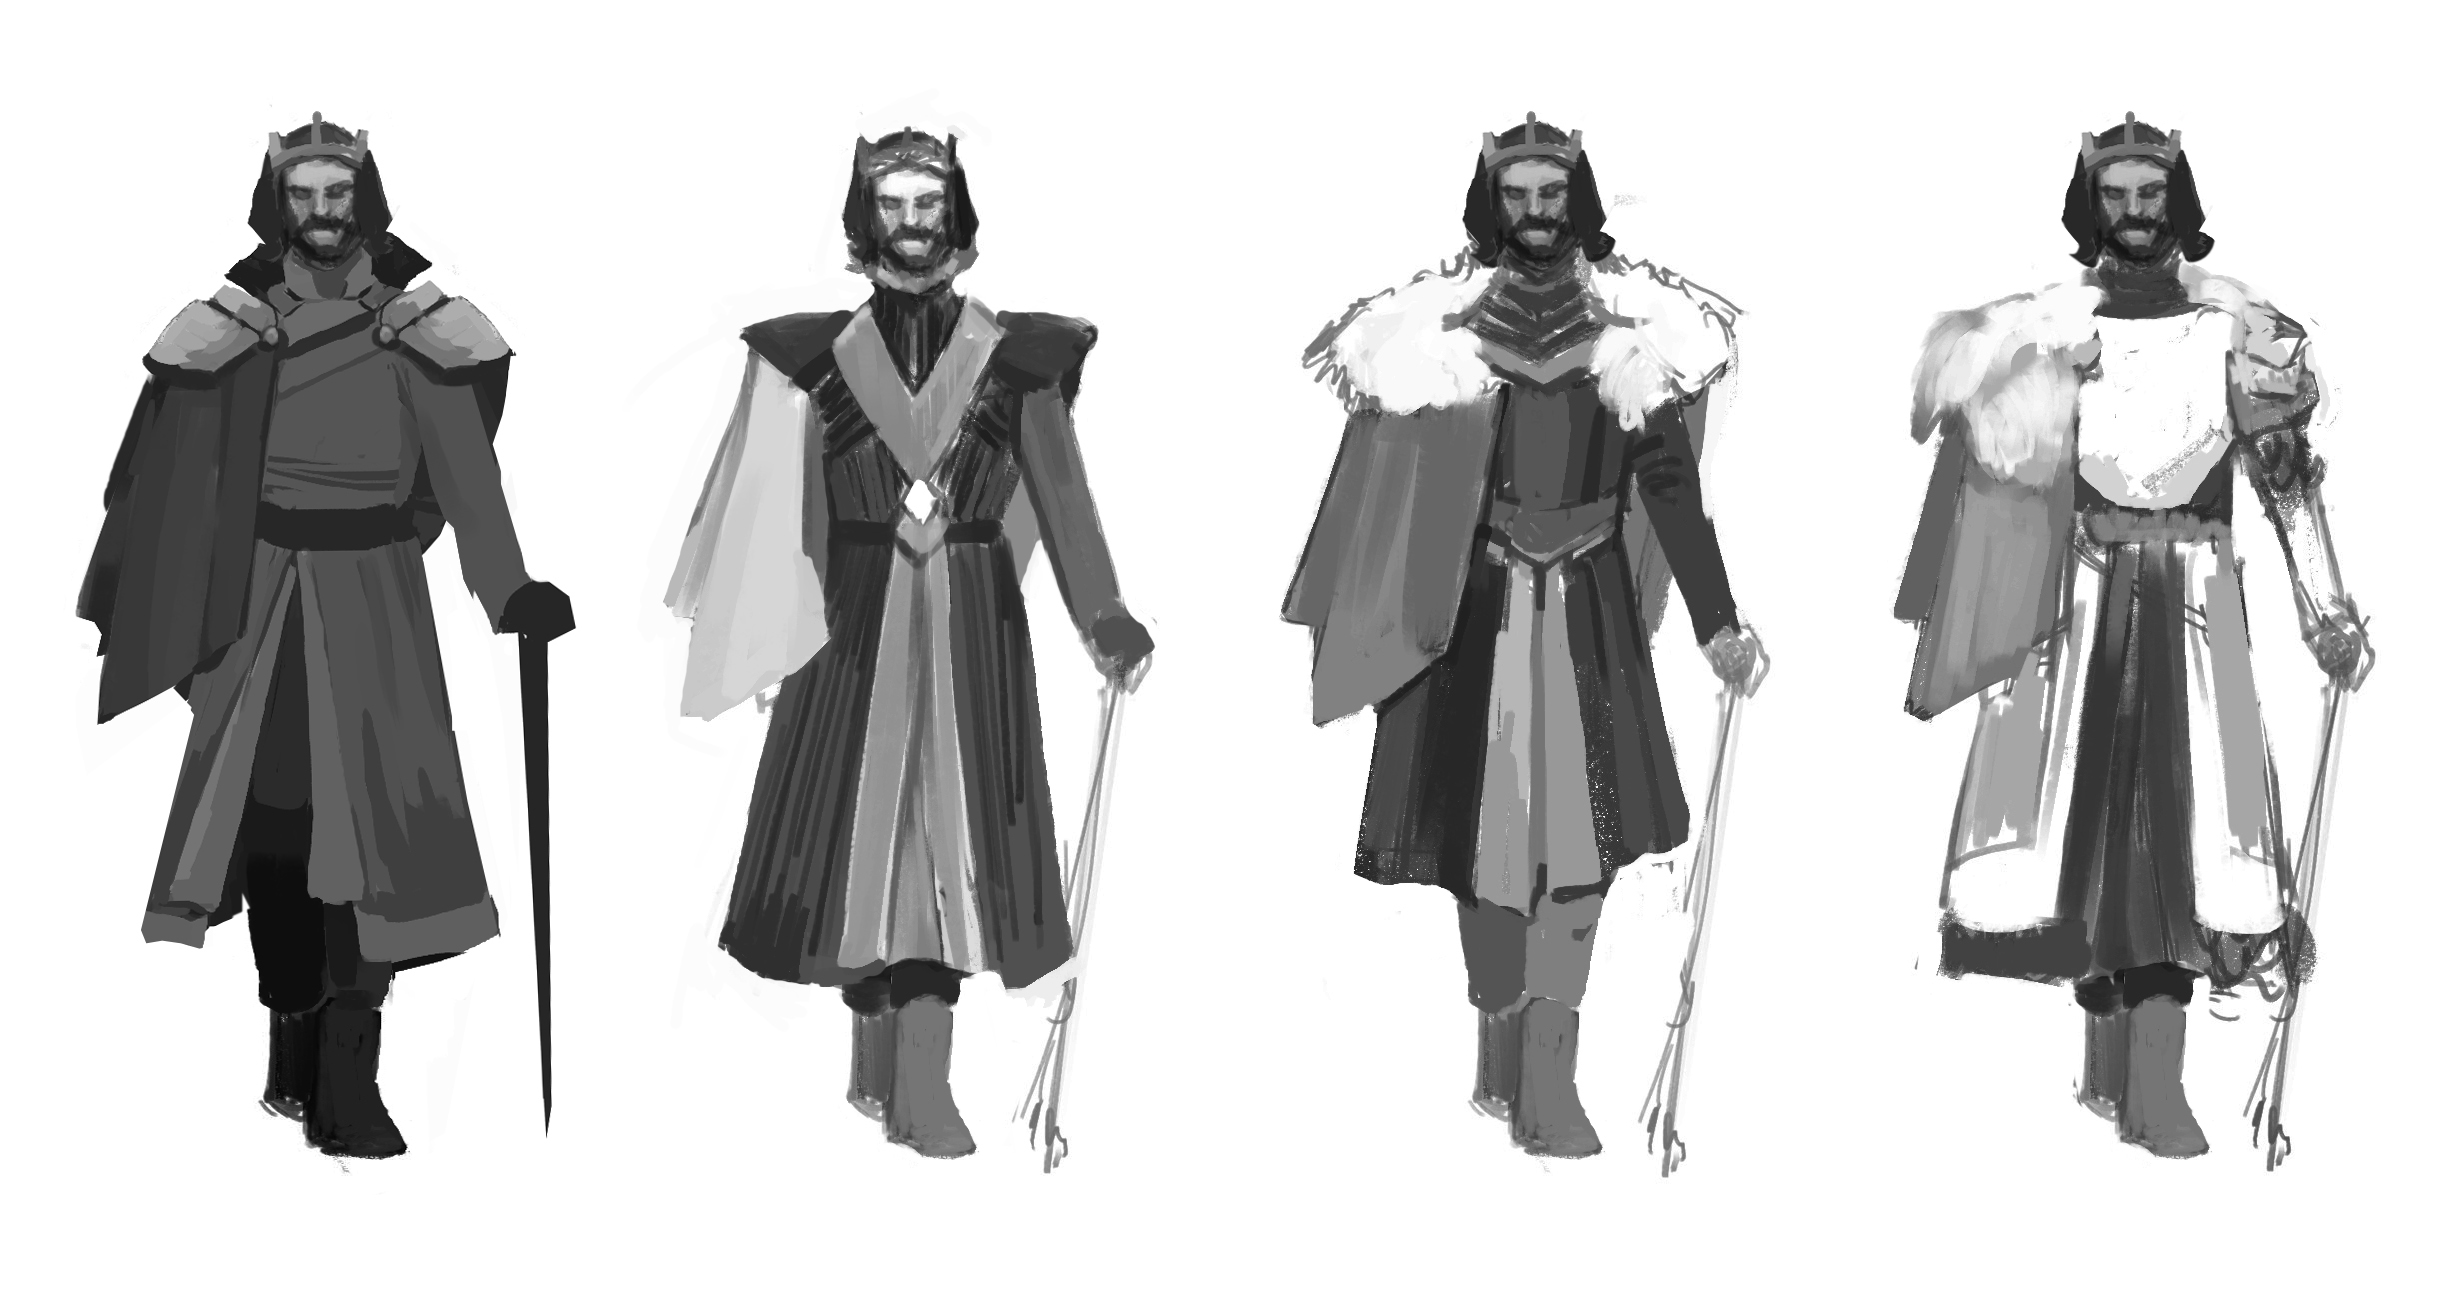 Initial silhouette exploration for first Lord.